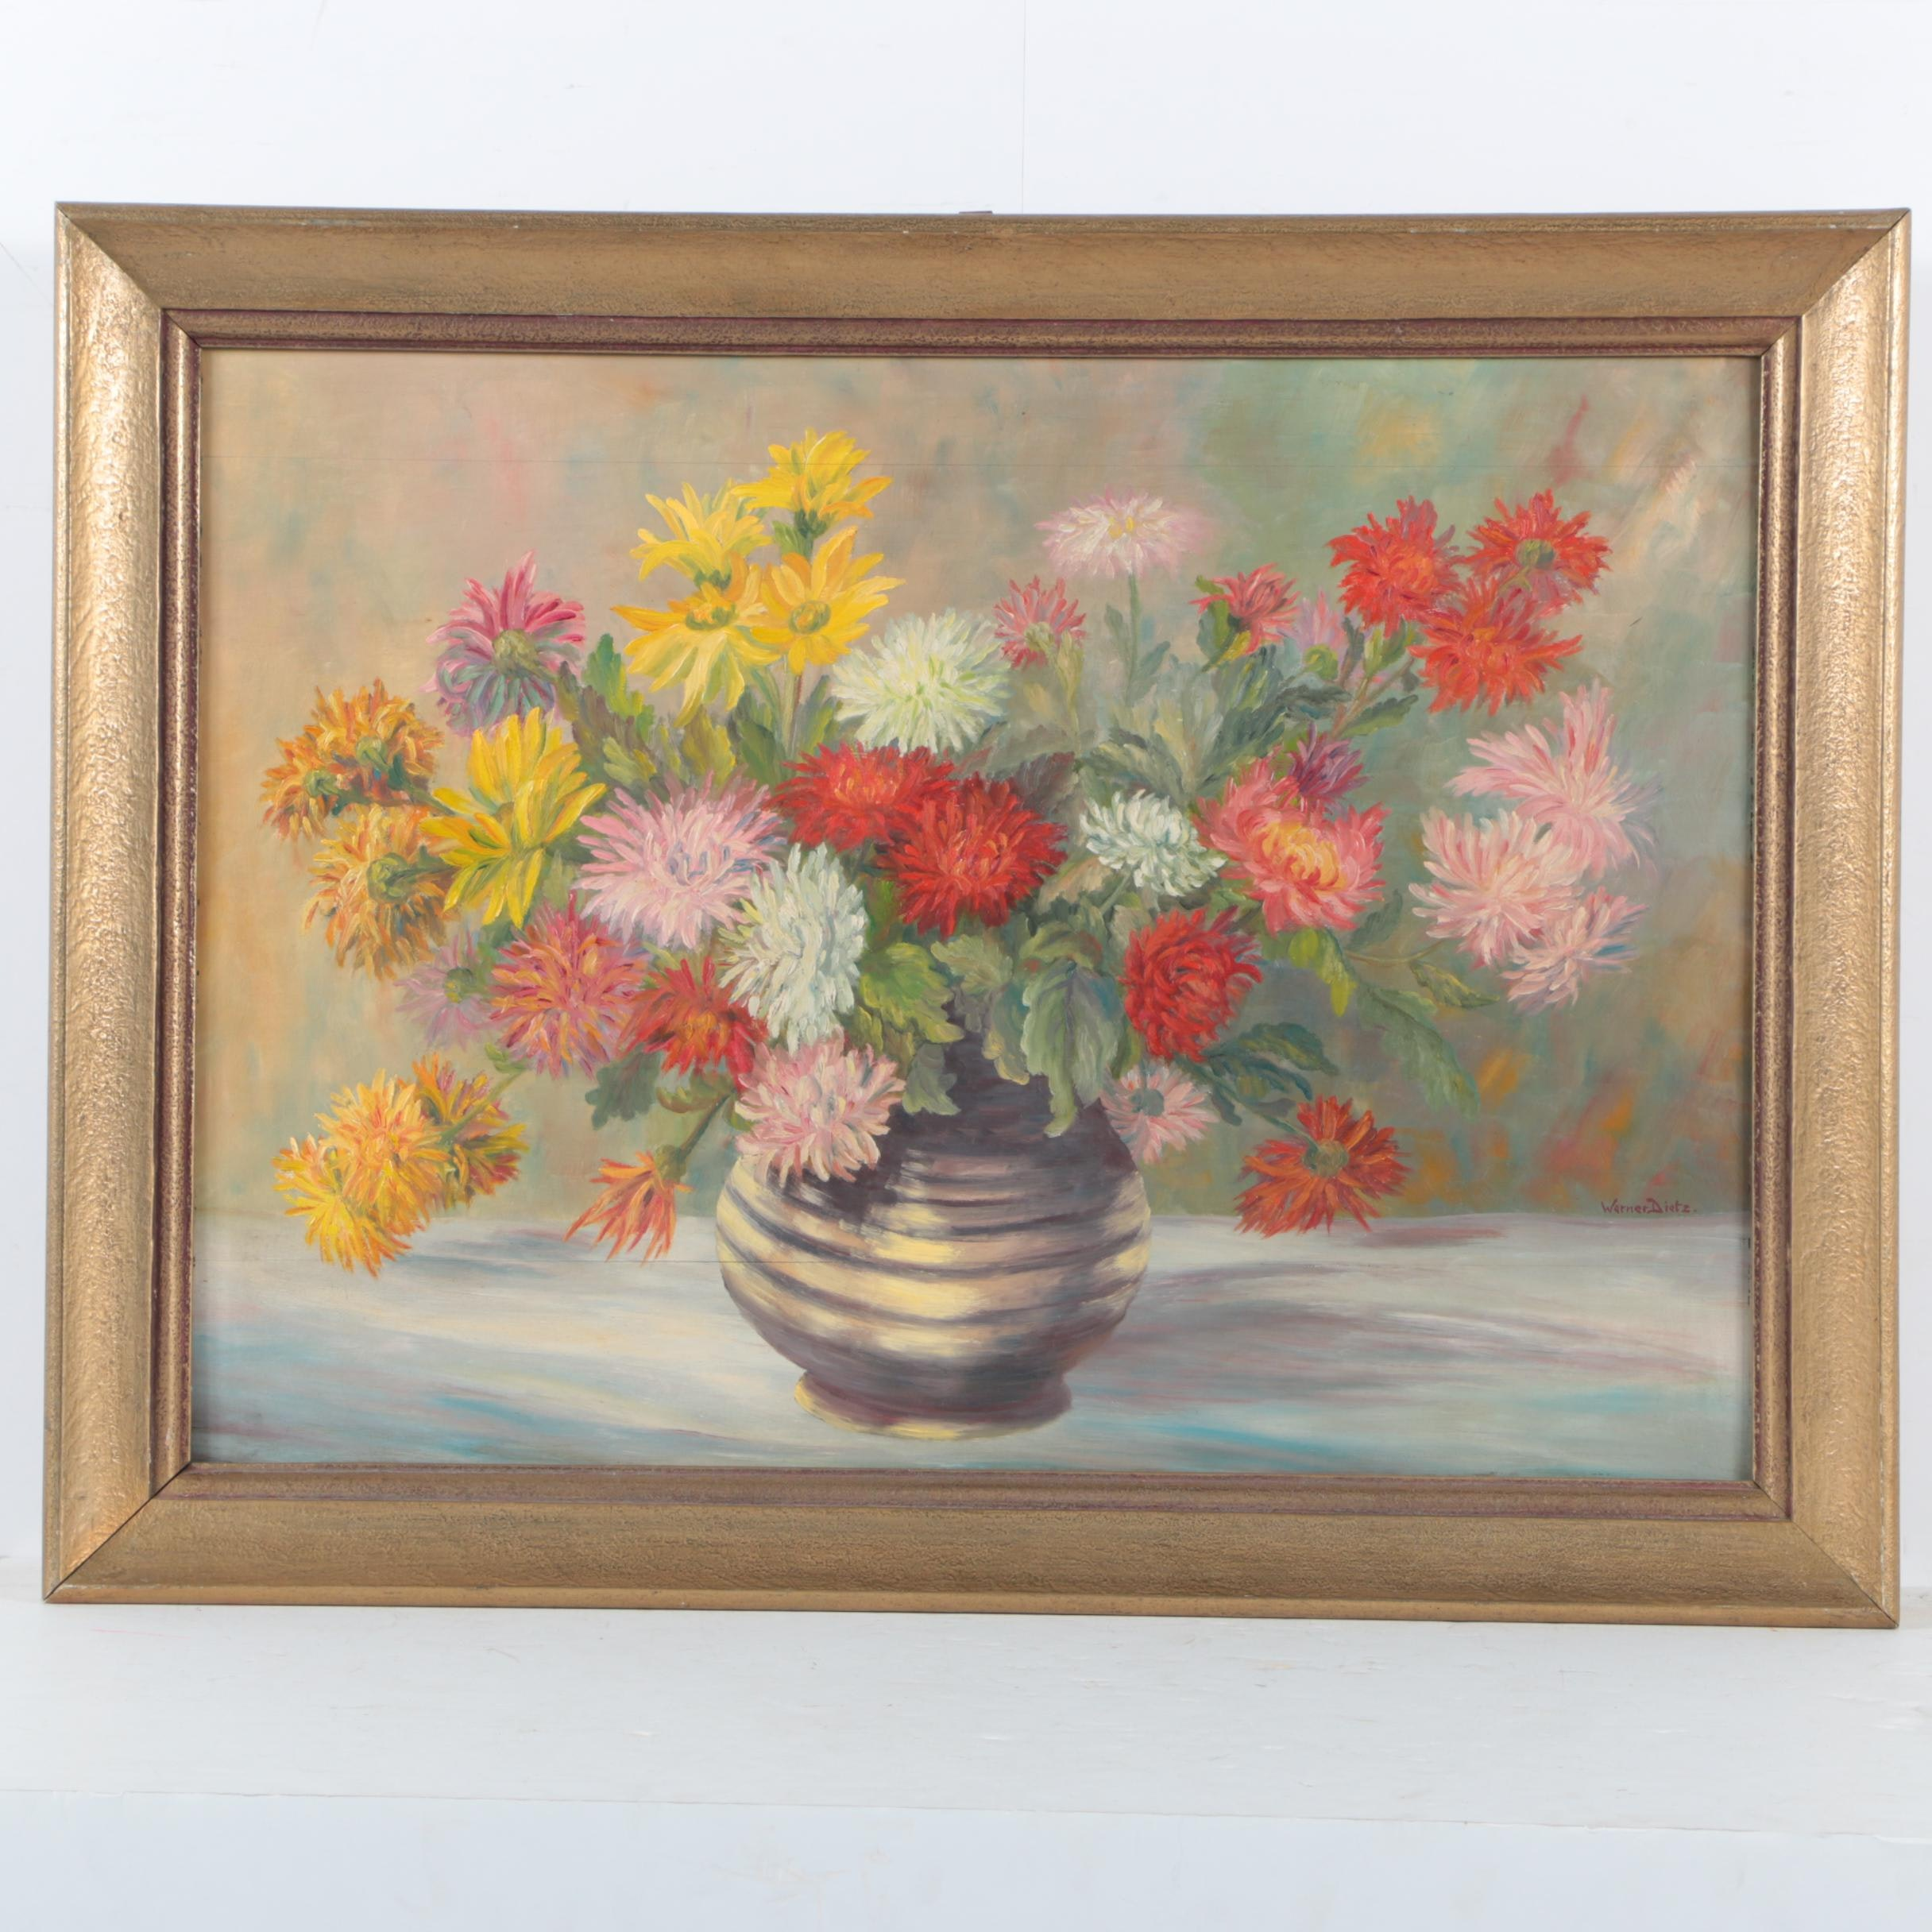 Werner Dietz Oil on Panel of Floral Still Life